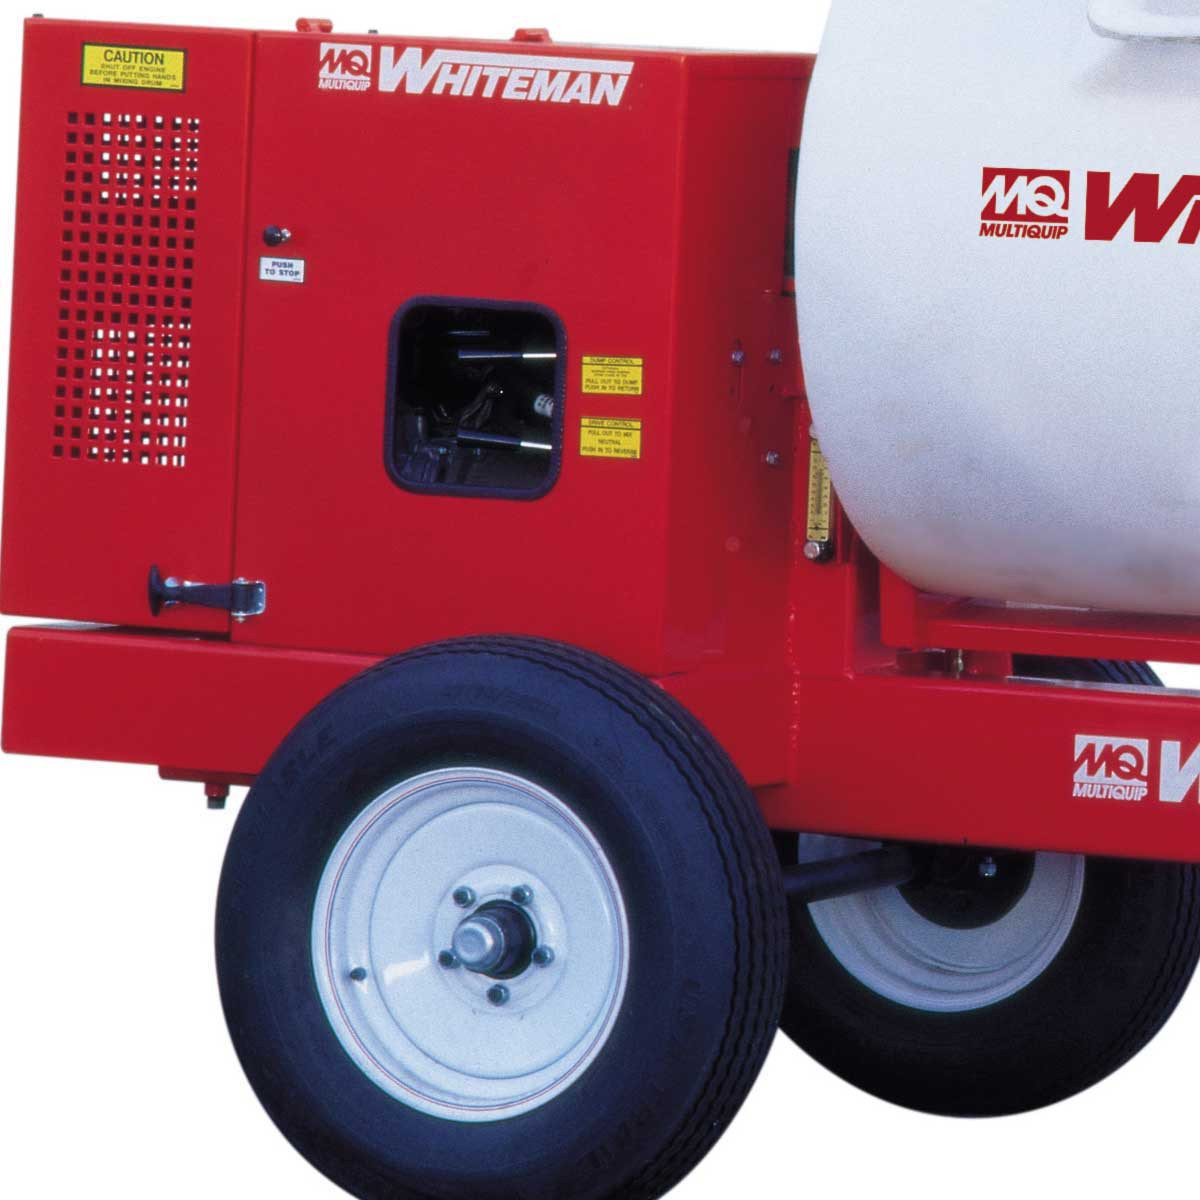 Multiquip Whiteman Gas Mixer wheels